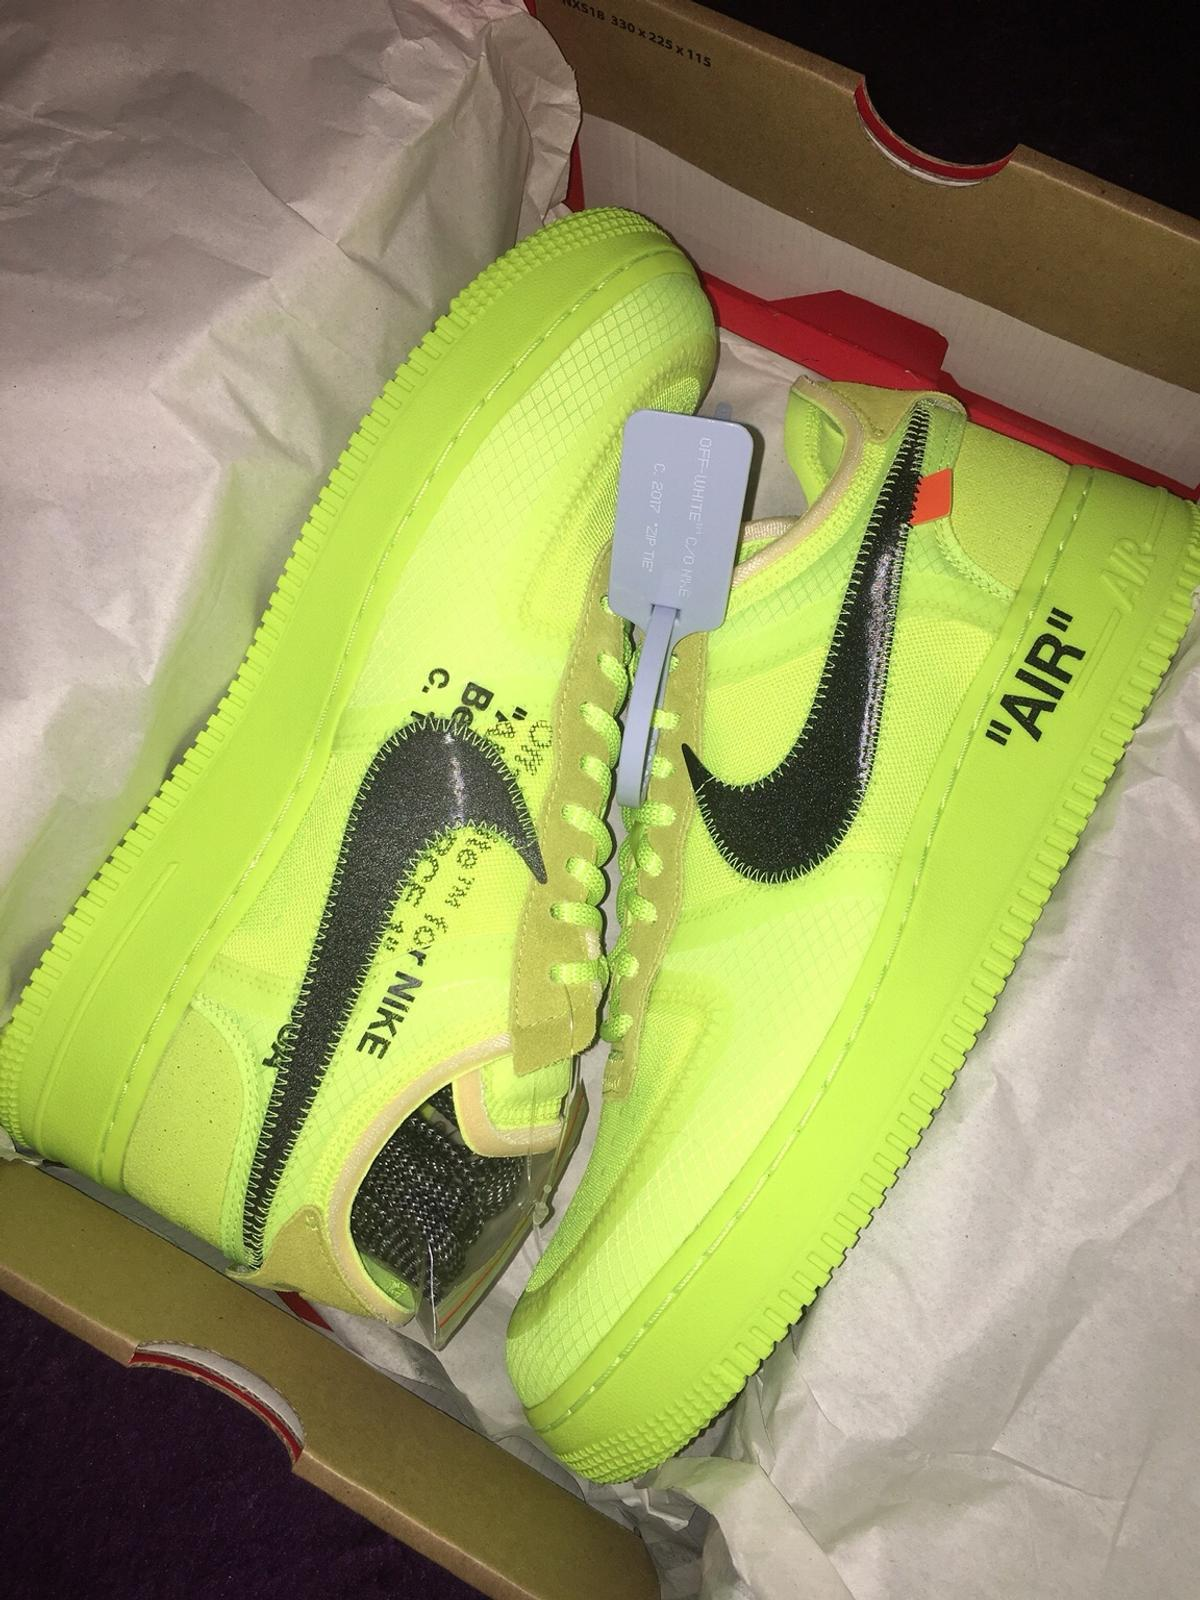 Nike air force 1 low off white volt size 9 UK in NE34